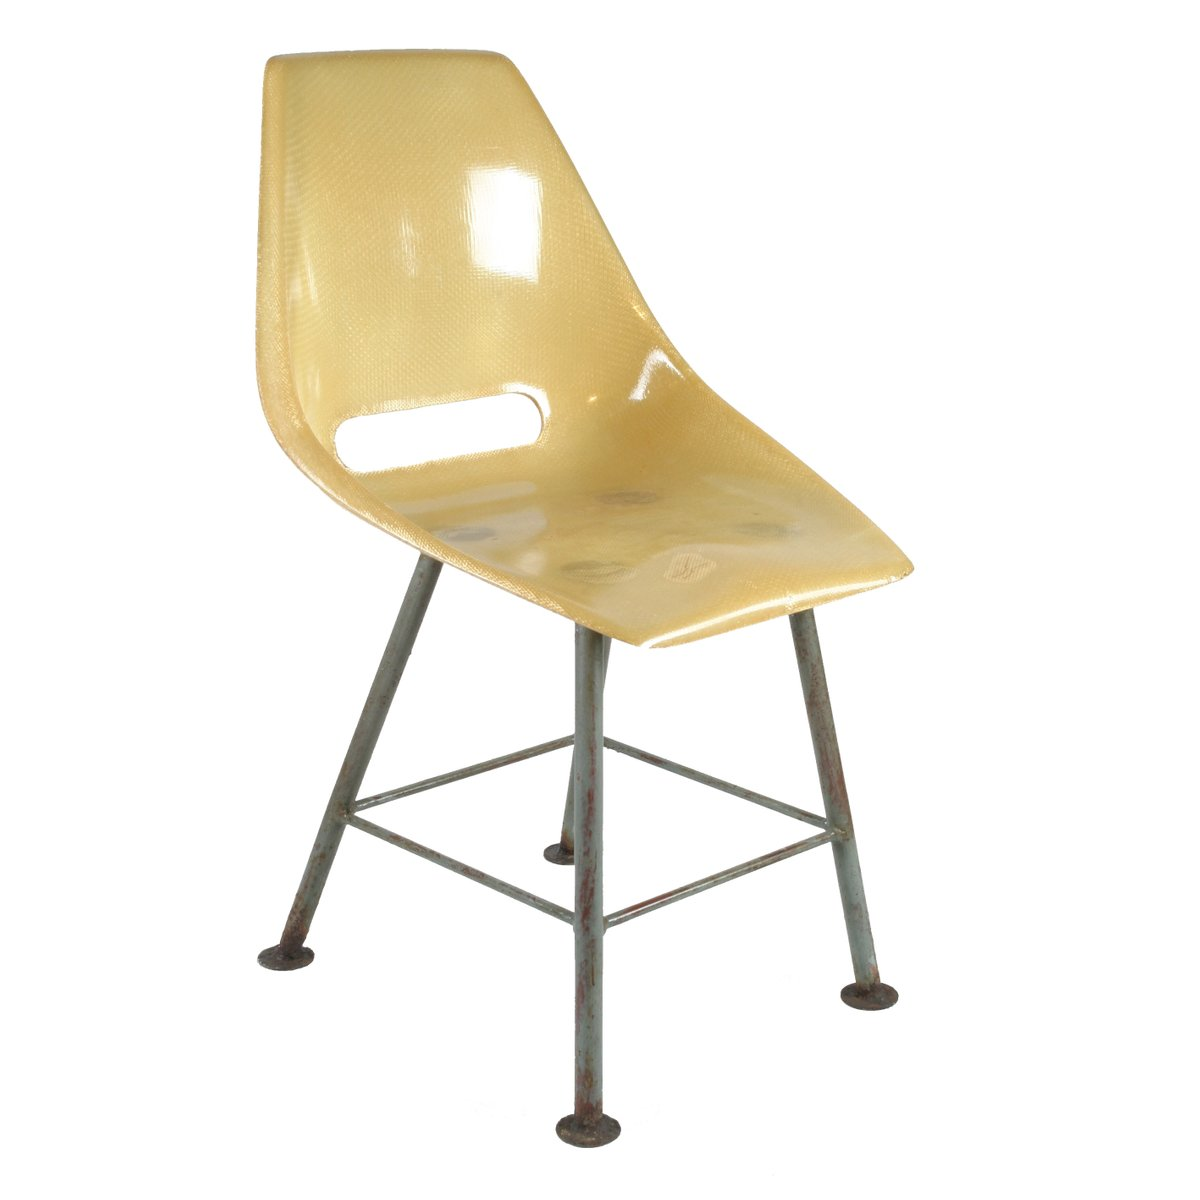 Mid-Century Chair by Miroslav Navratil for Vertex for sale at Pamono